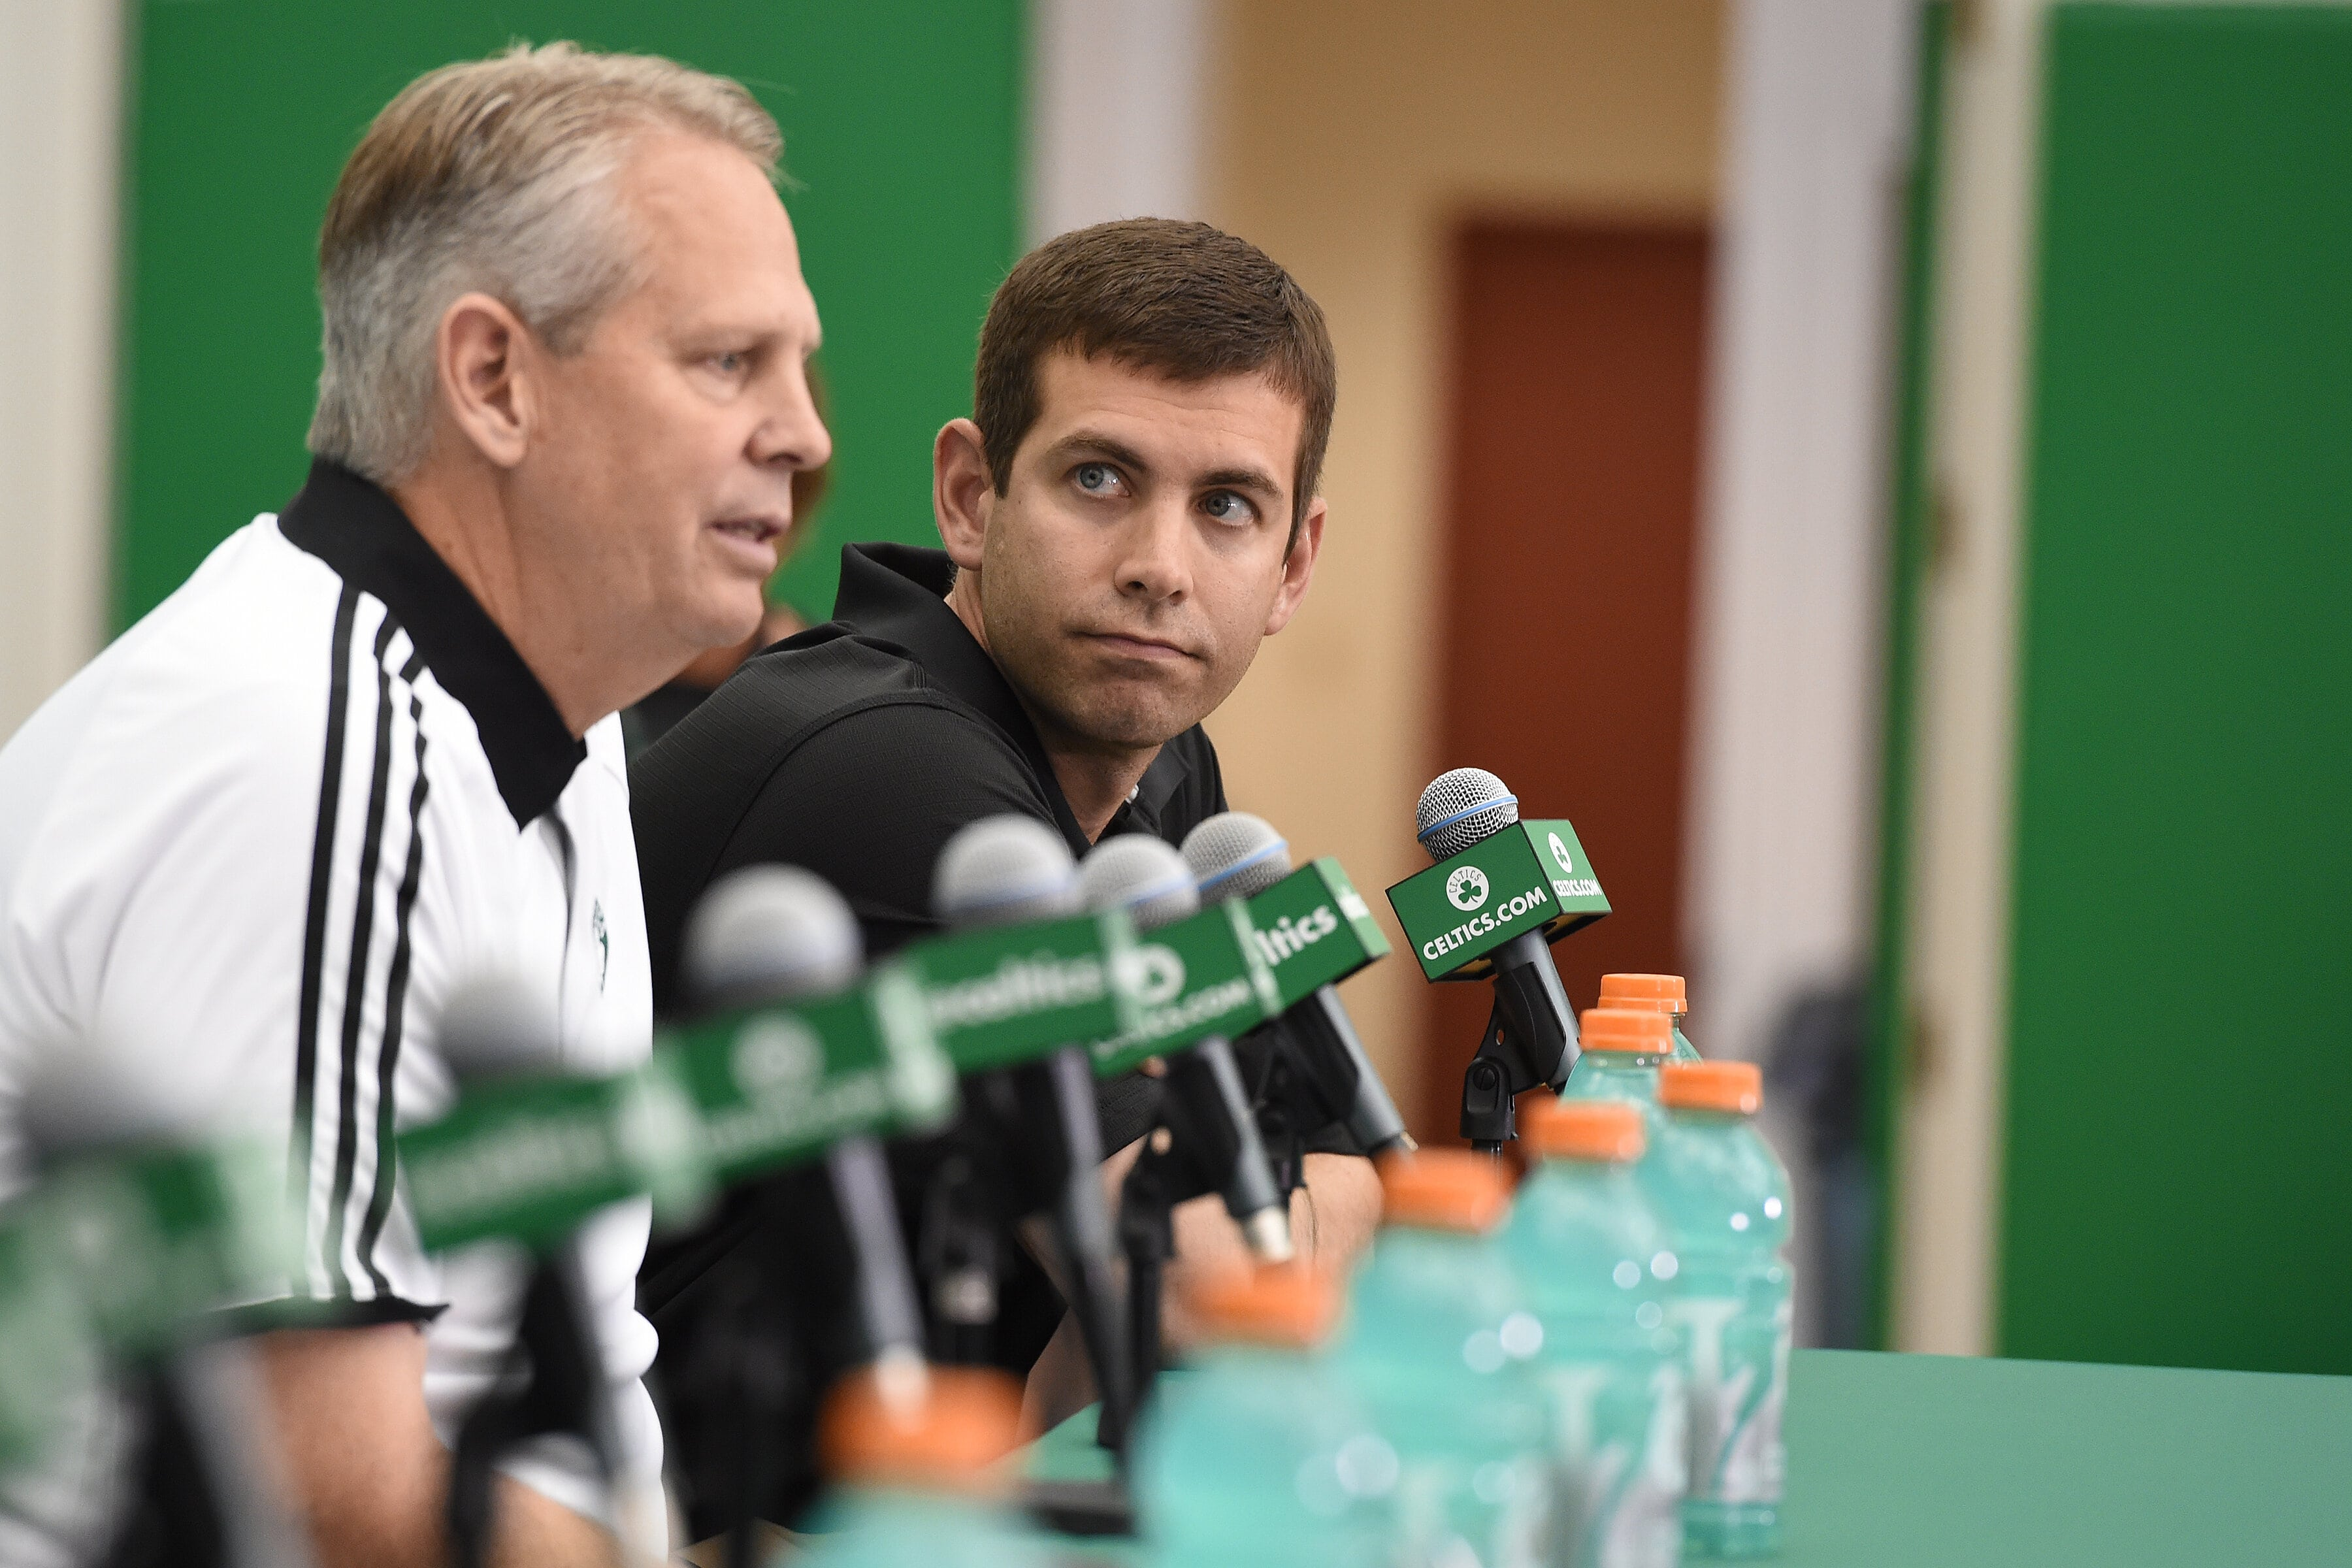 Danny Ainge Resigning as Celtics GM, Brad Stevens Moving From Head Coach to Front Office Role